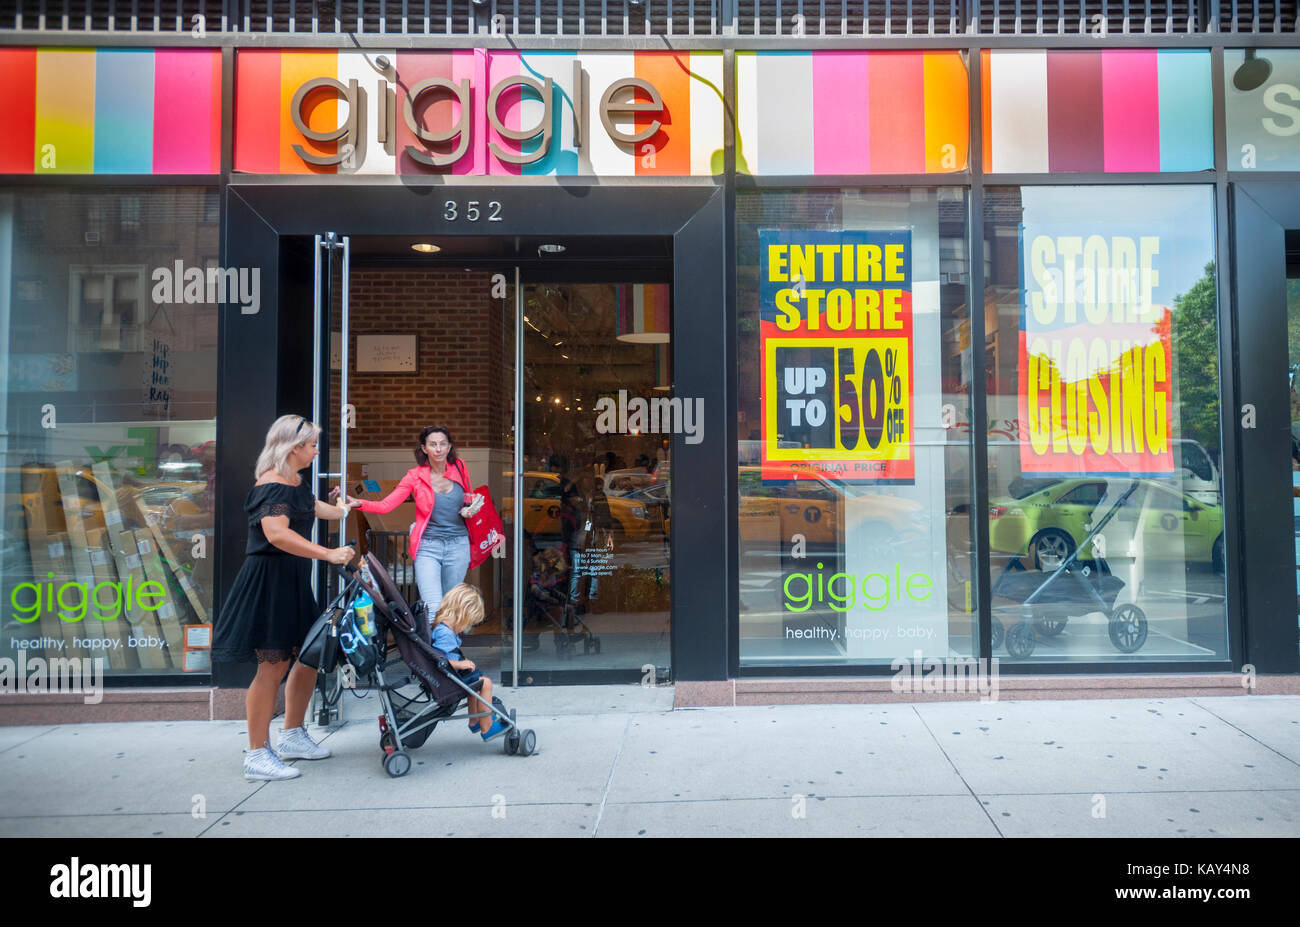 A Giggle baby boutique in the Upper West Side neighborhood in New York on Tuesday, September 26, 2017 announces - Stock Image